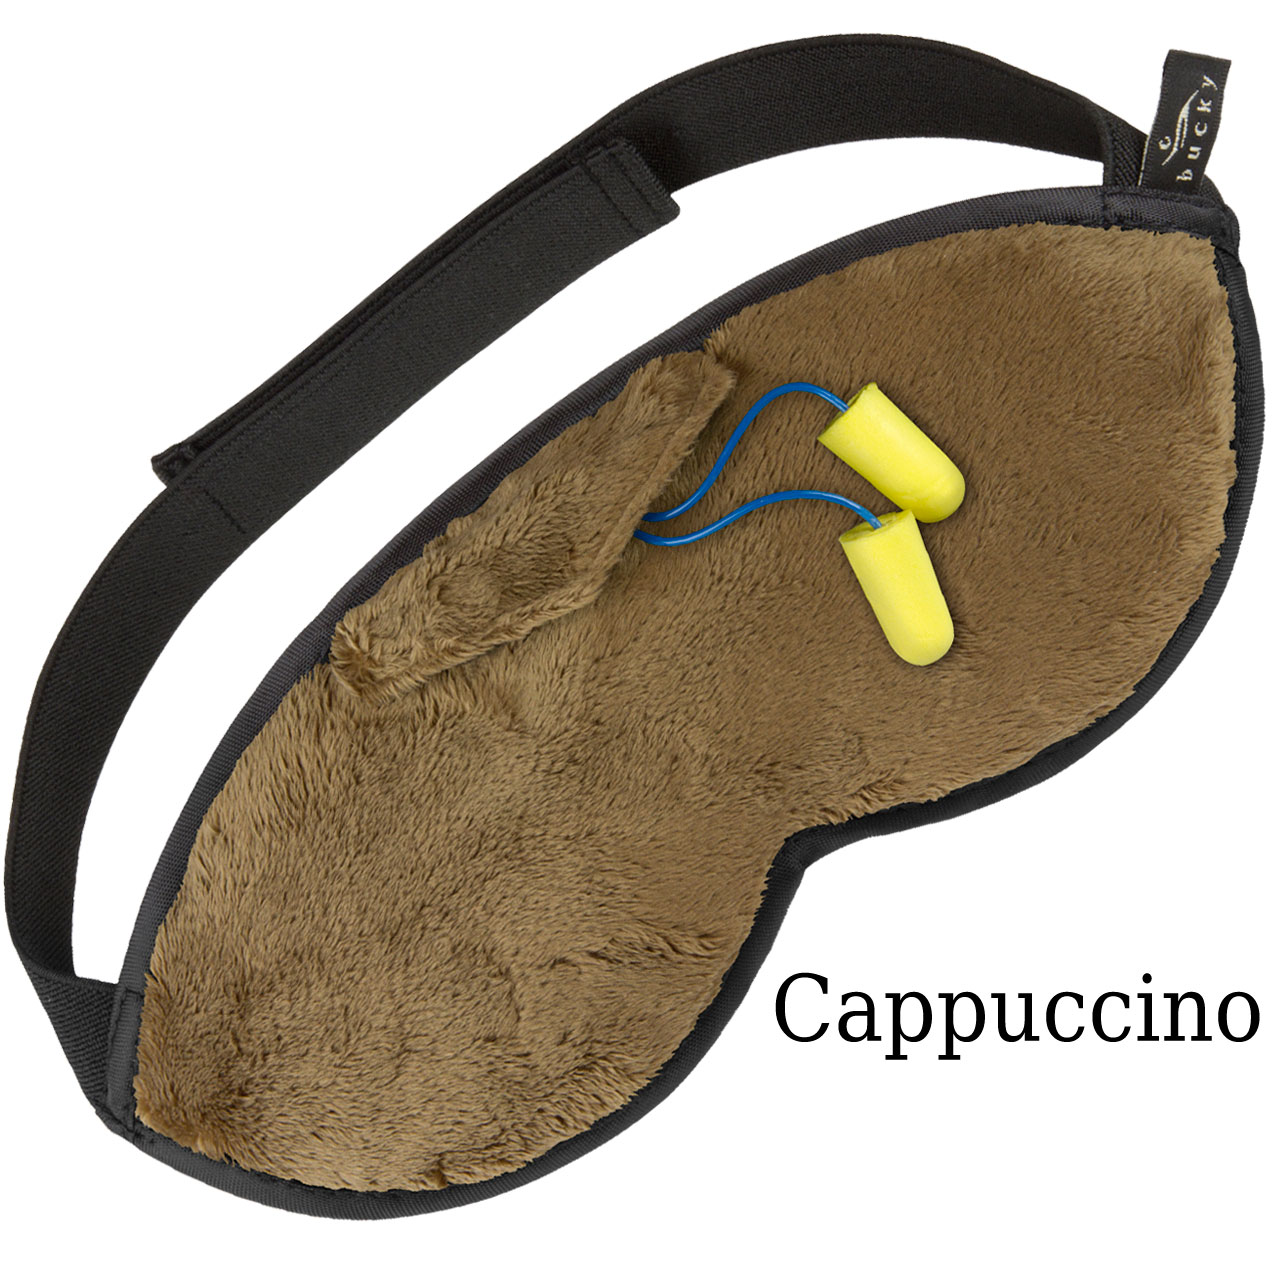 Bucky Shades Sleep Mask | Cappuccino